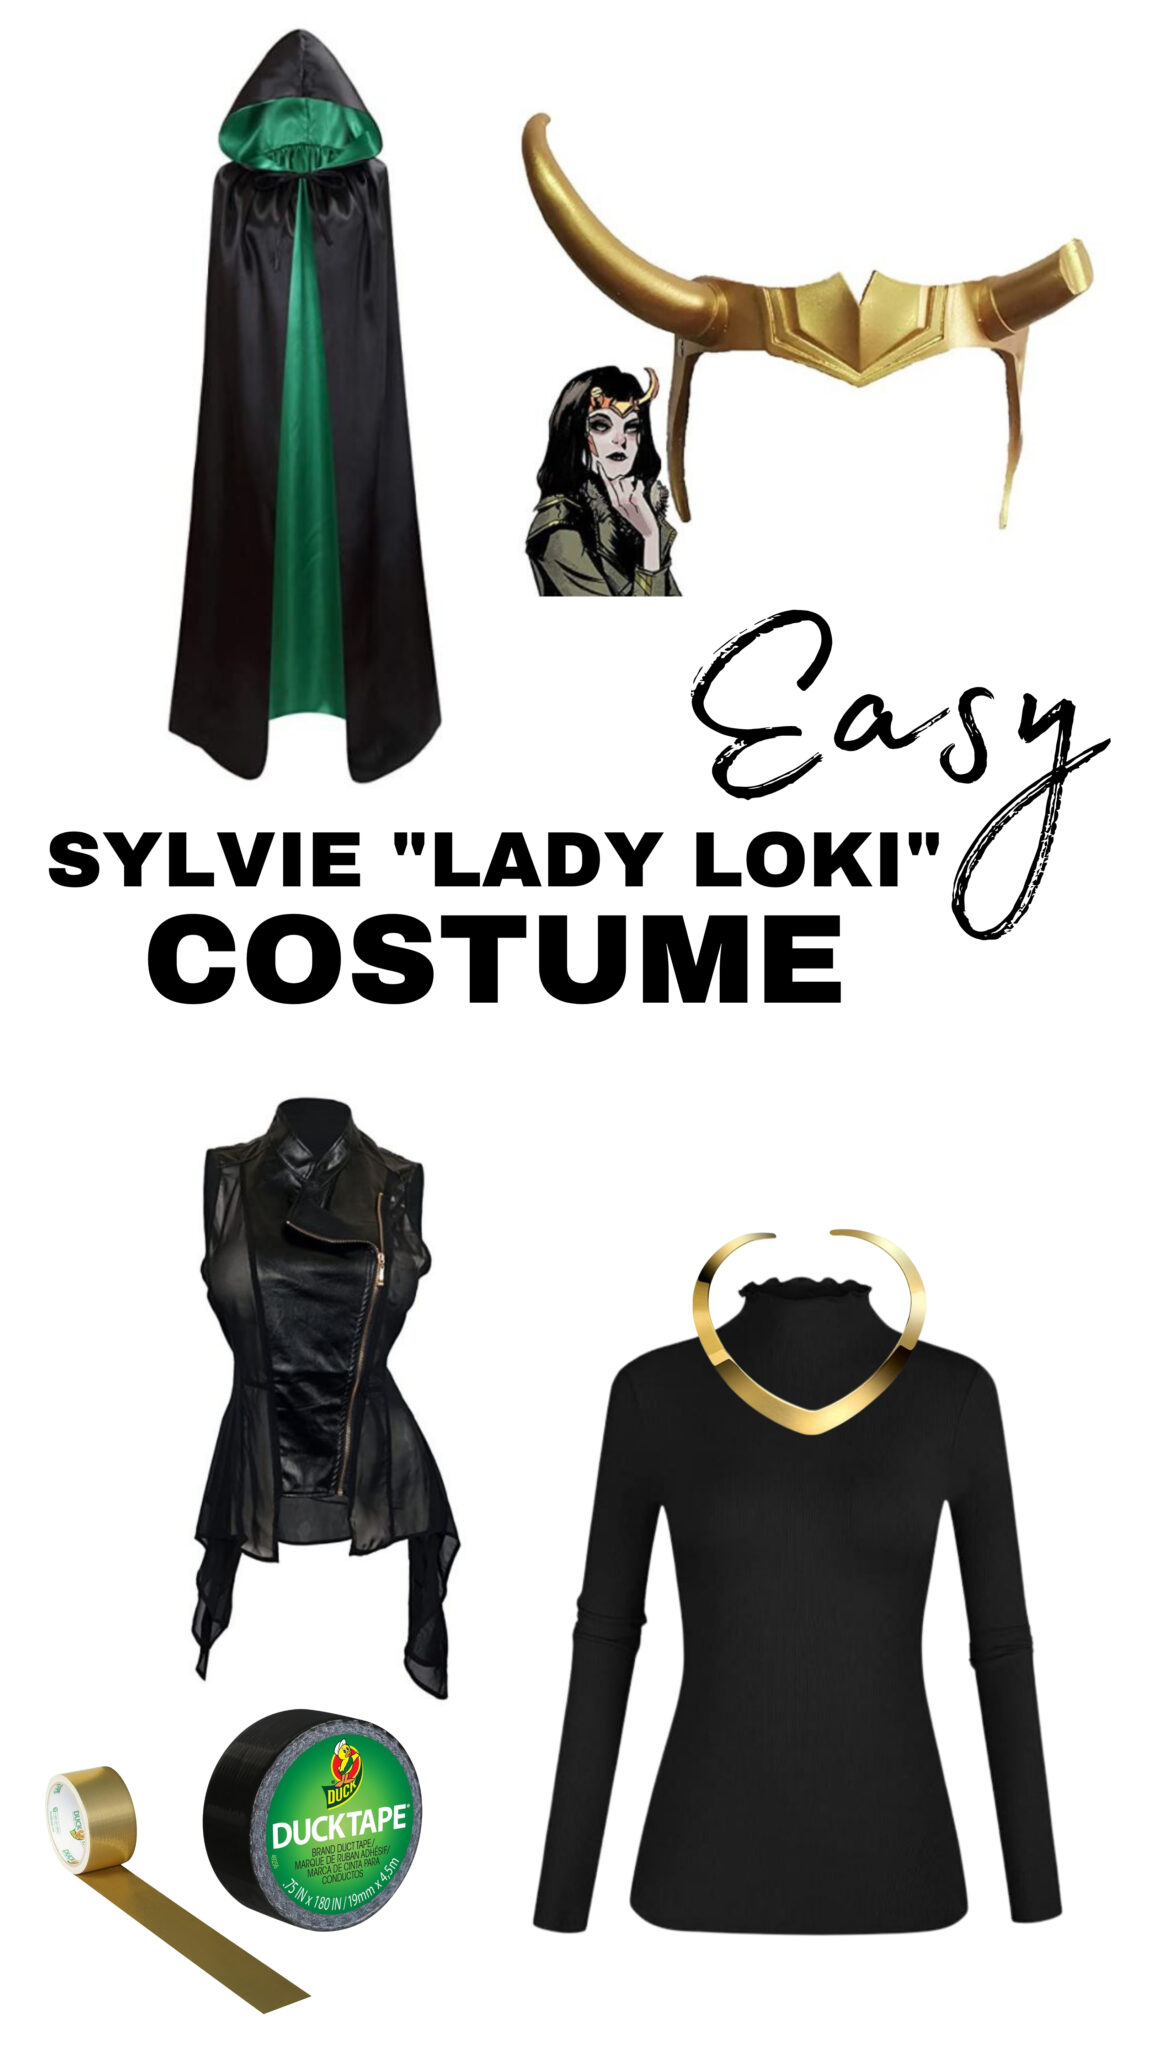 East DIY Marvel Themed Costumes for Halloween Using Regular Clothes All Things with Purpose Sarah Lemp 1